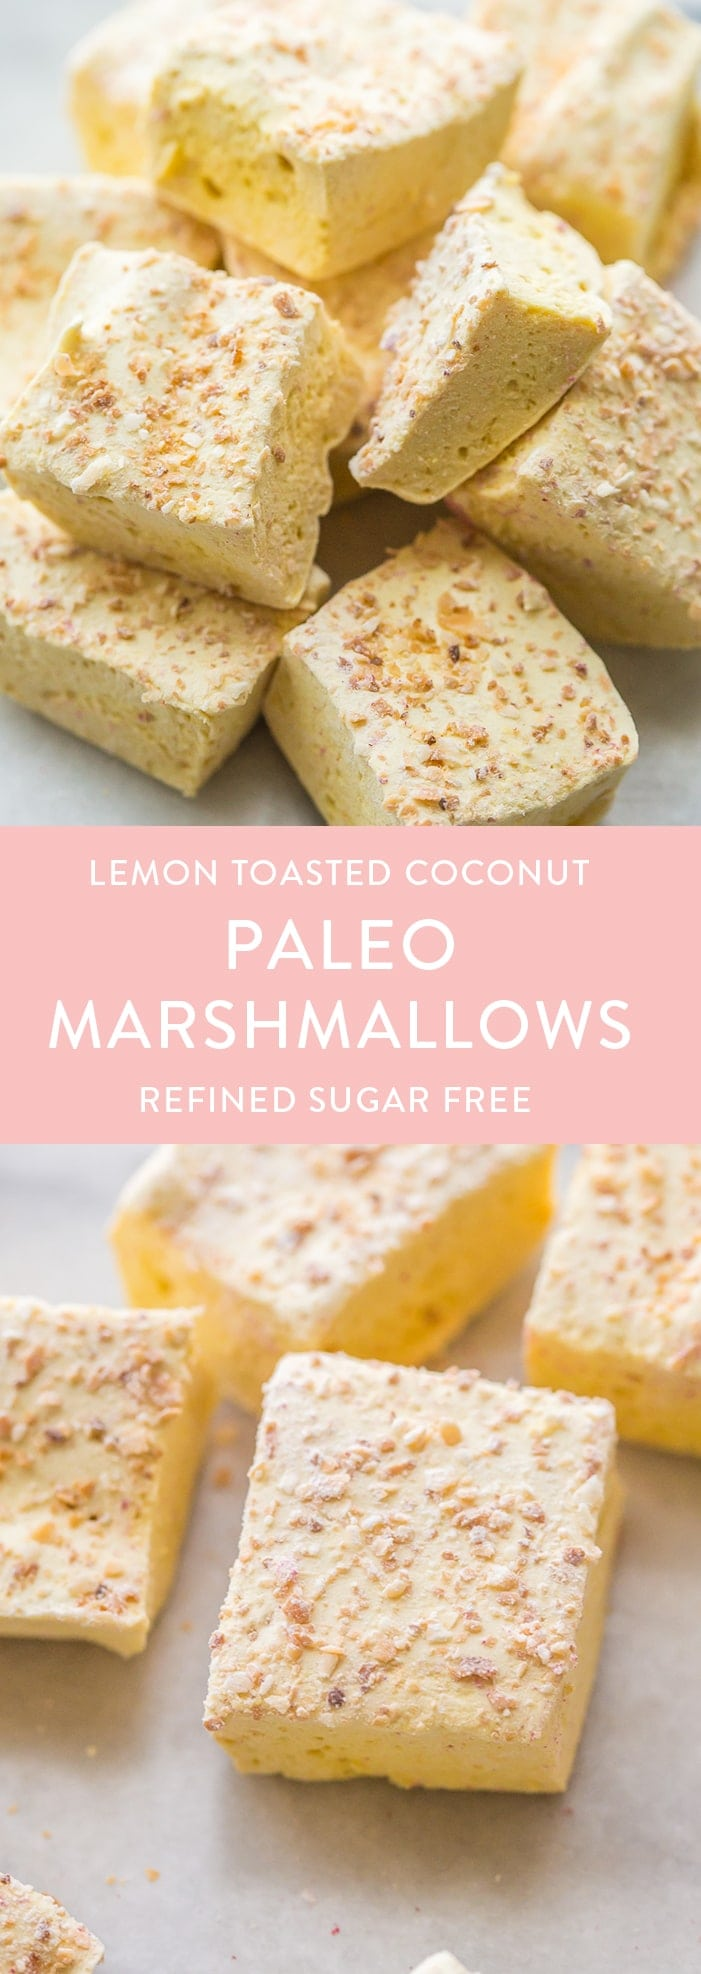 Raspberry paleo marshmallows and toasted coconut lemon paleo marshmallows are the perfect paleo treat. Light and fluffy and made from only healthy ingredients? YAS queen